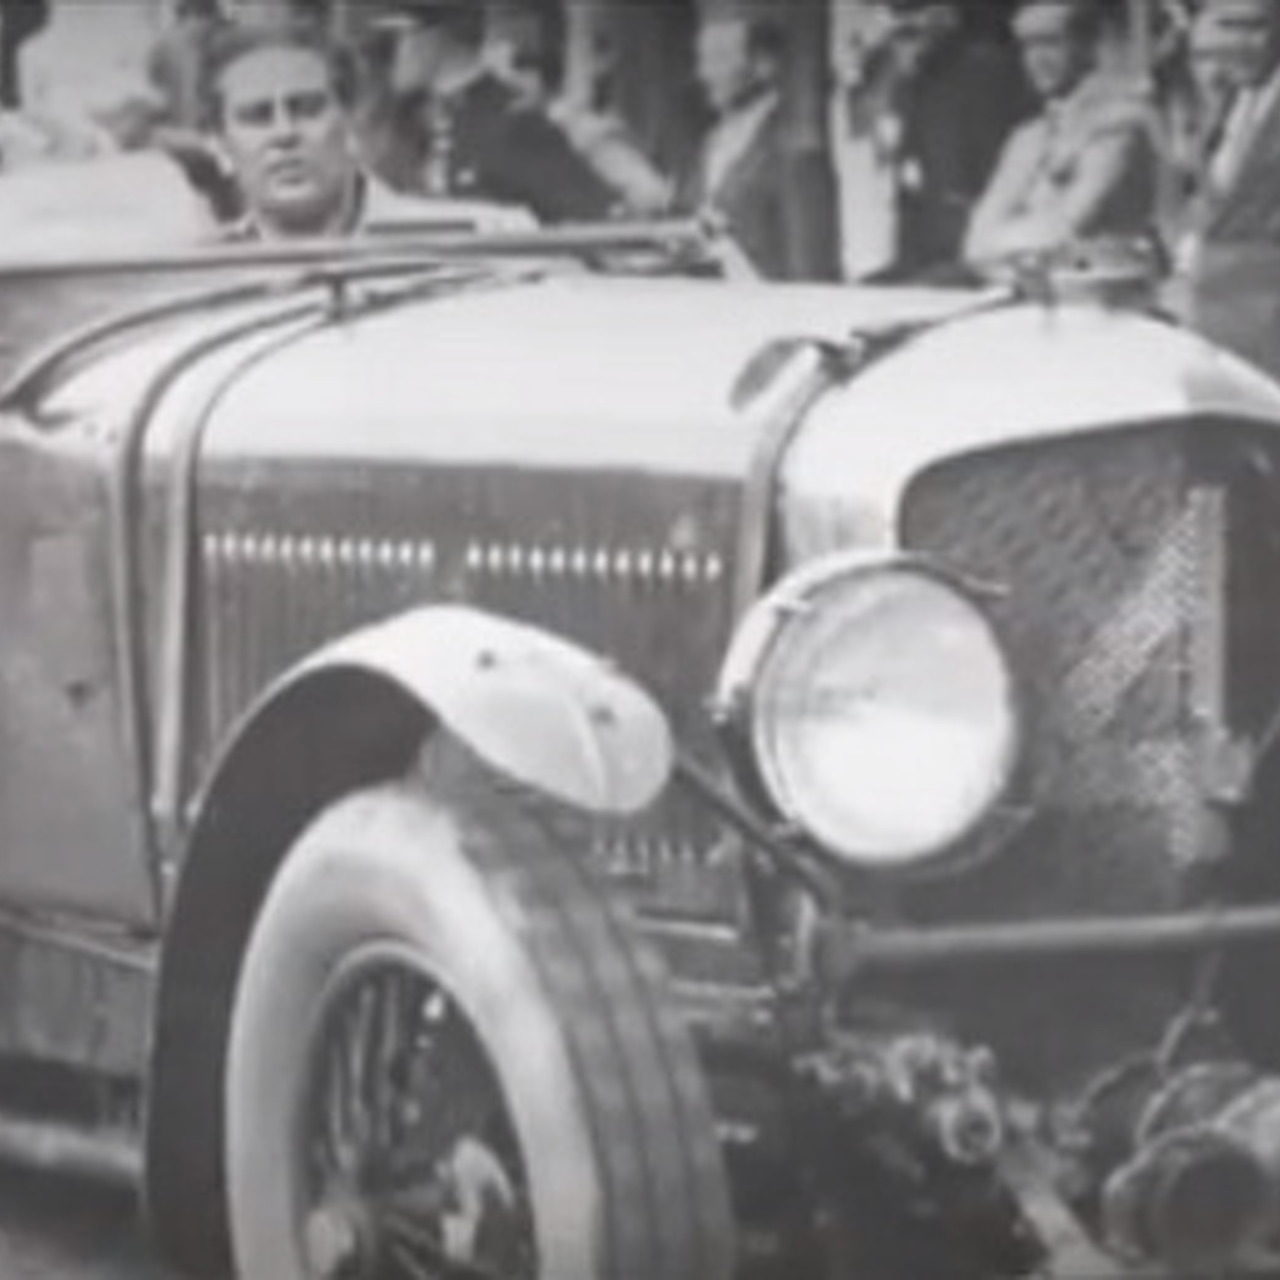 Le Mans: Dangerous Past, Dangerous Present [w/video]